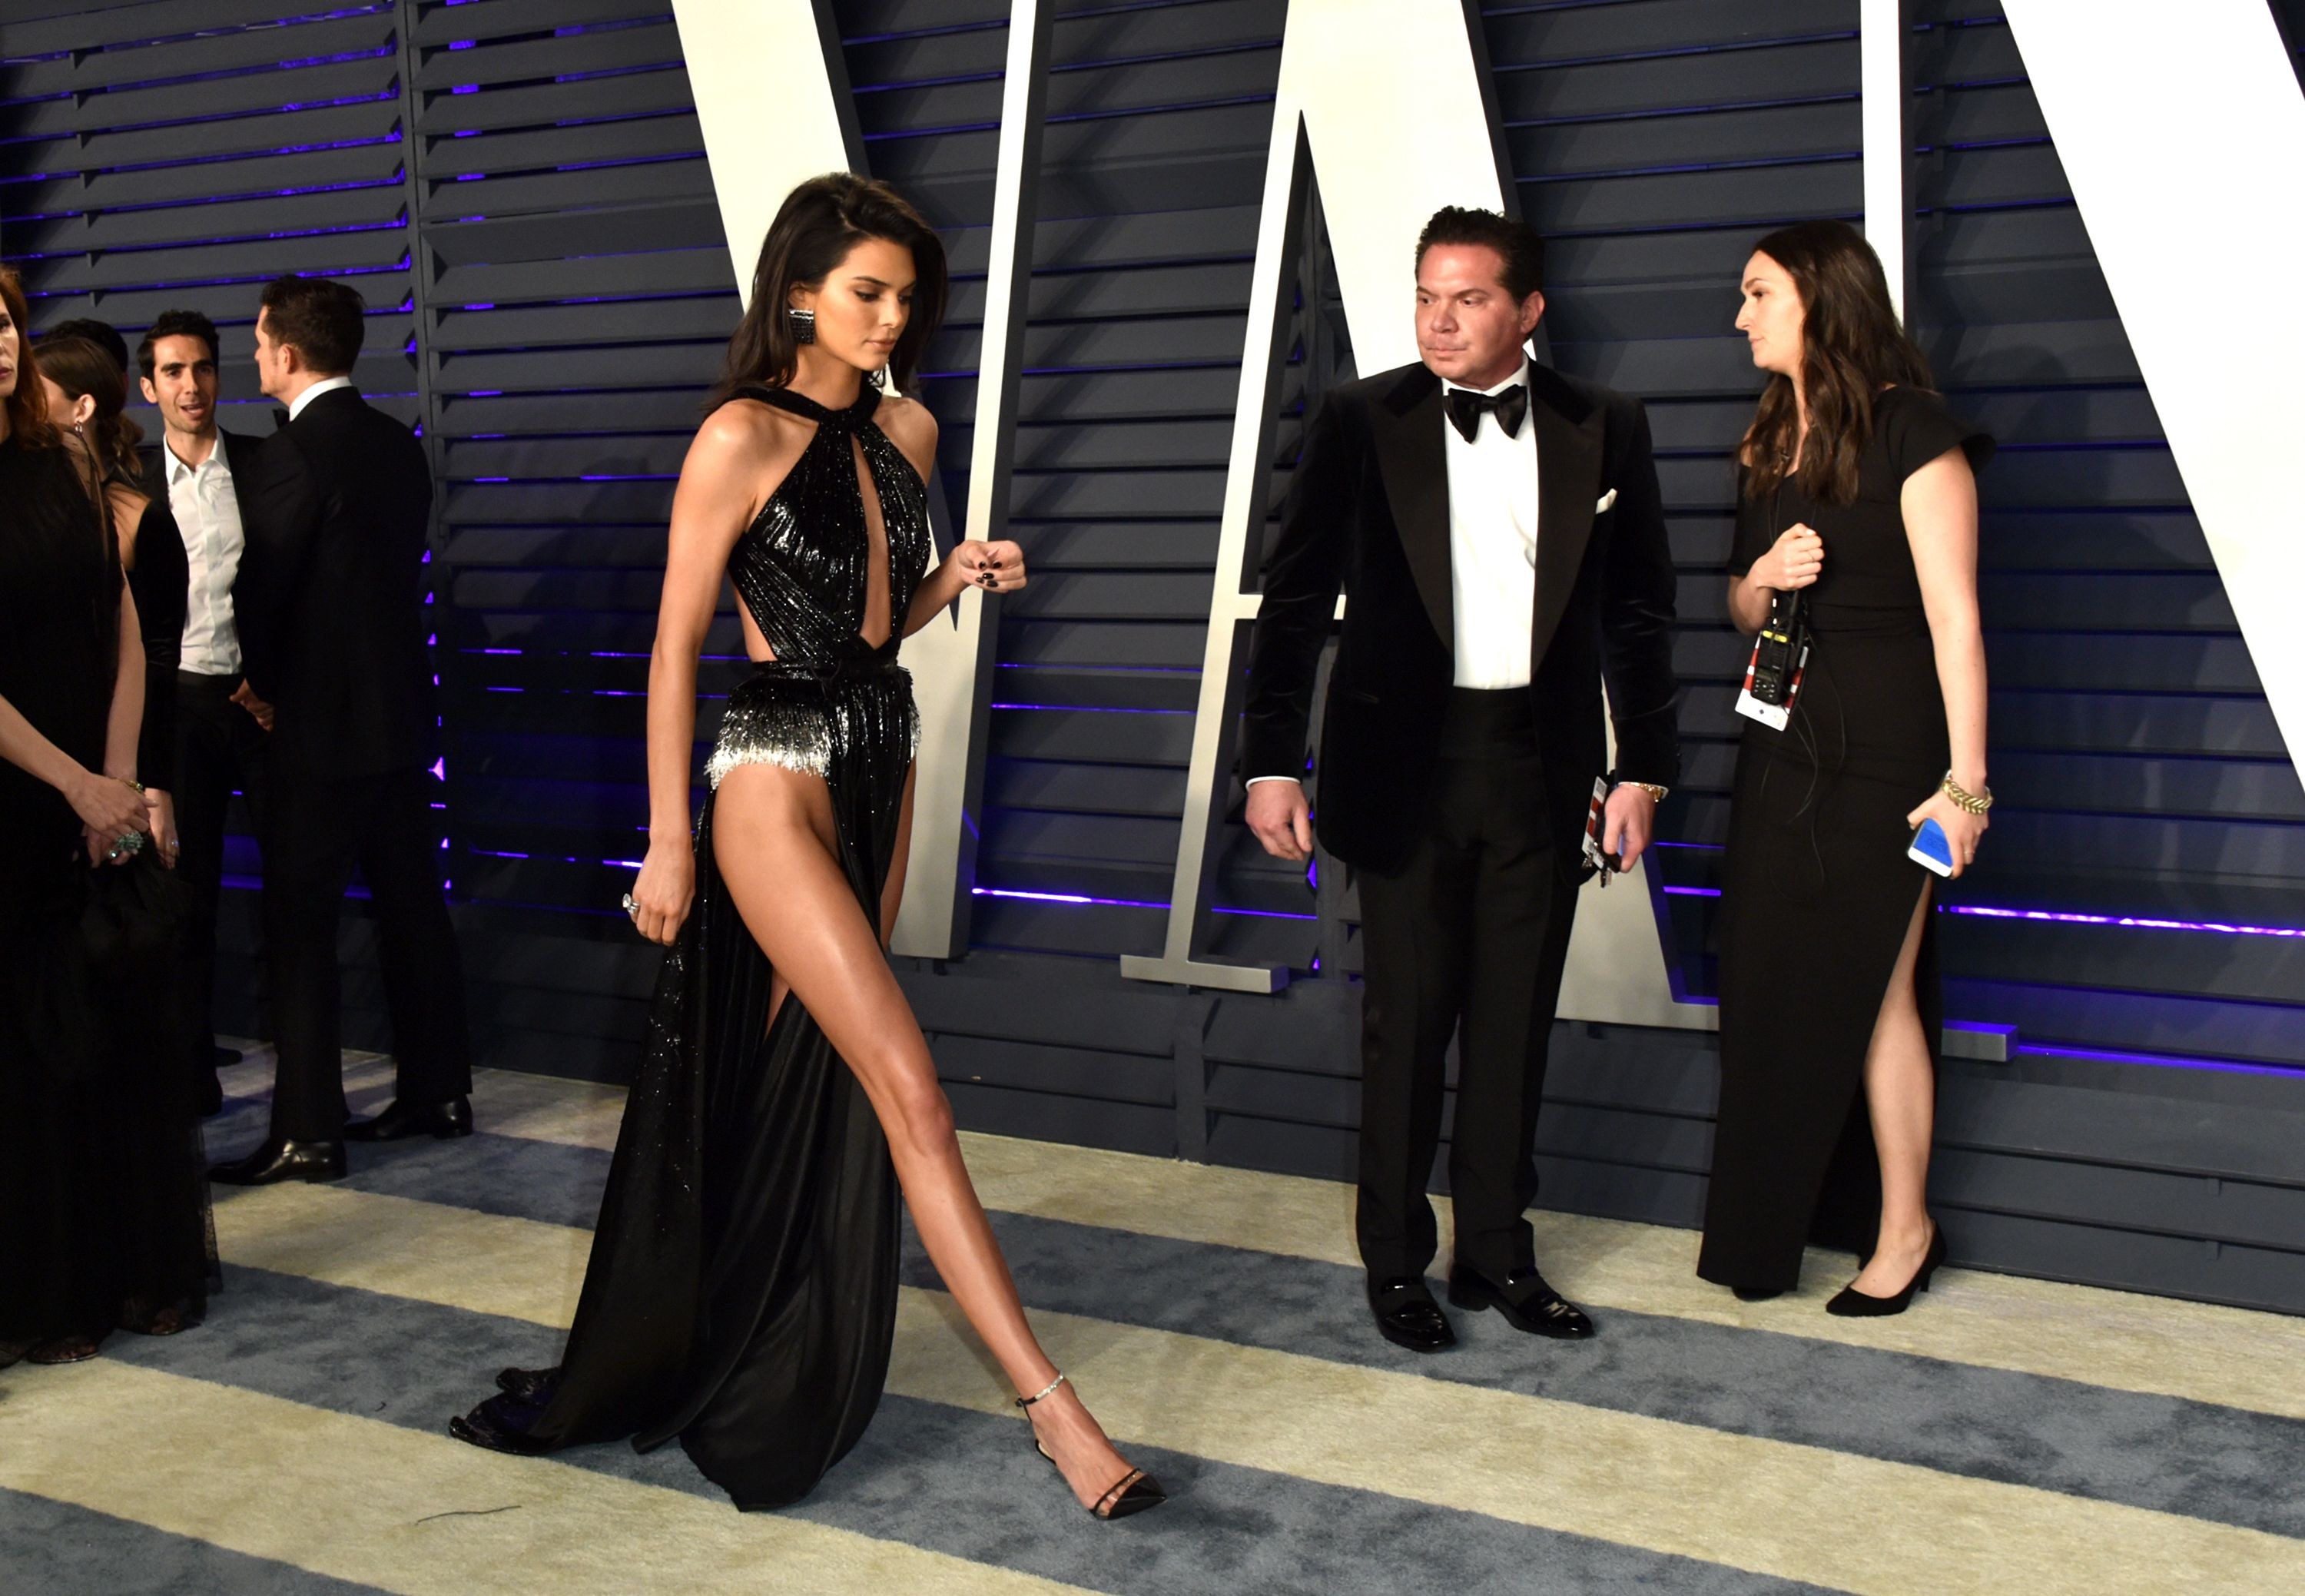 93298e6cbd Kendall Jenner Vanity Fair Oscars Party Wardrobe Malfunction - Kendall  Jenner Ditches Underwear at Vanity Fair Oscars Party